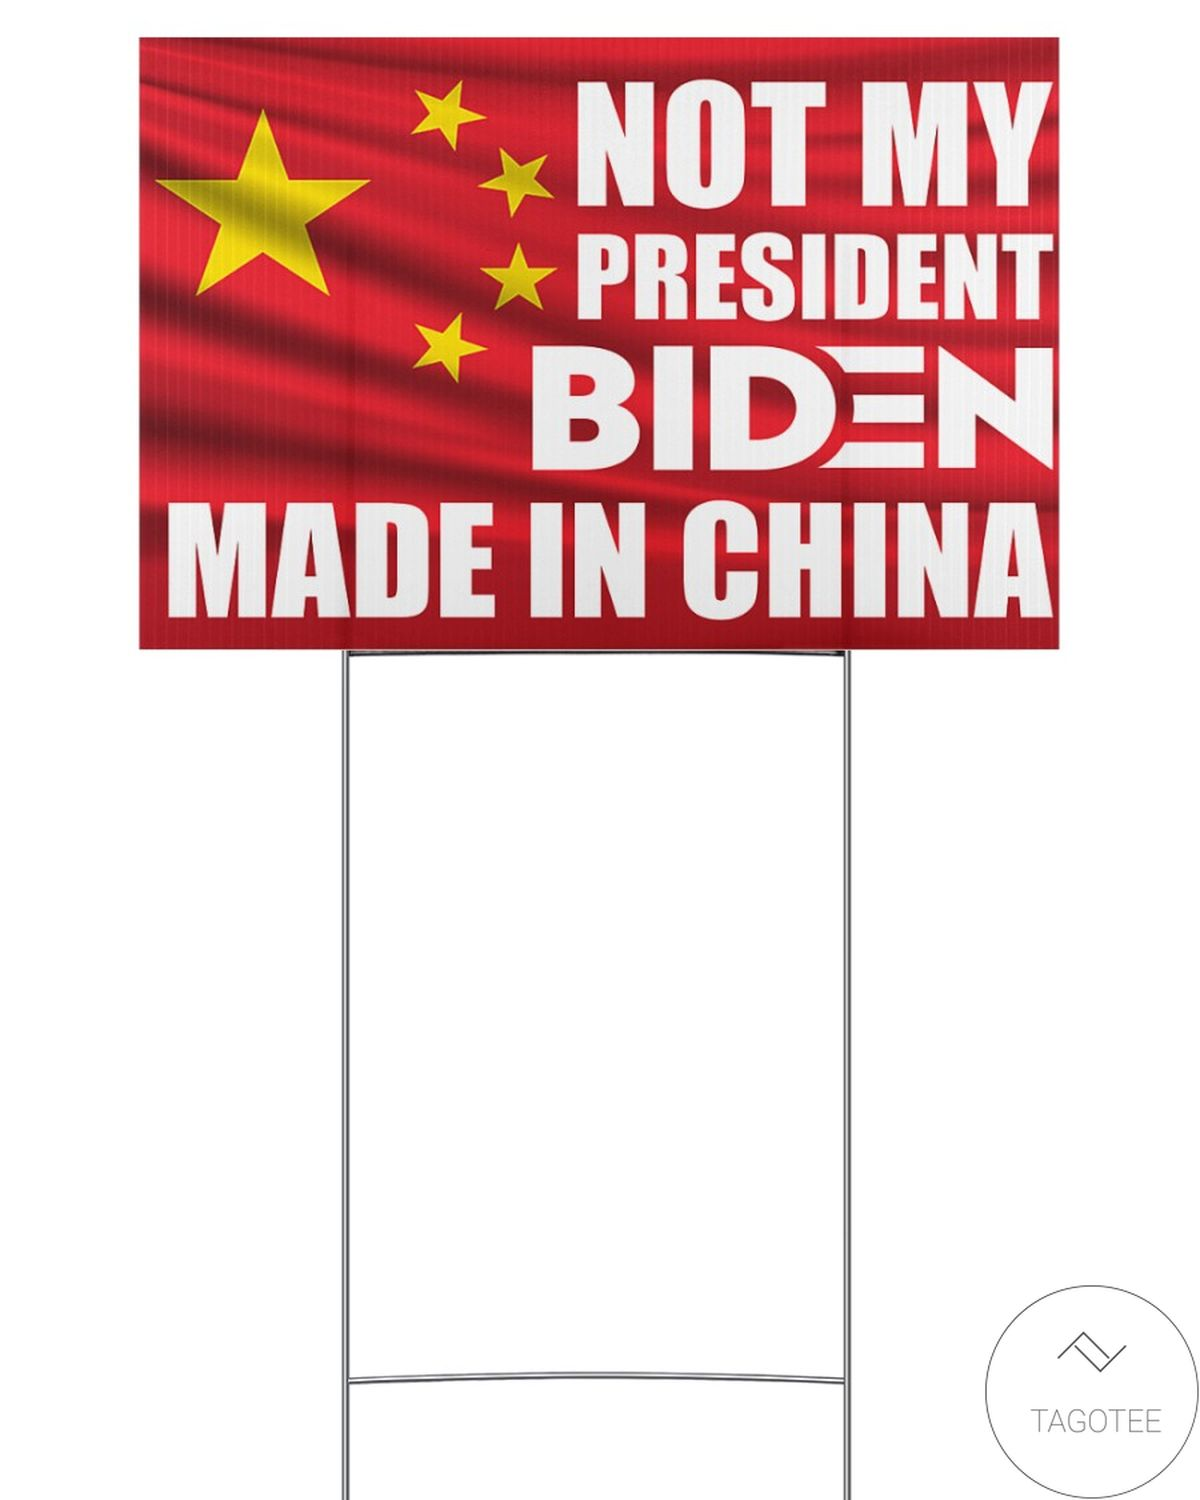 Not My President Biden Made In China Yard Signs